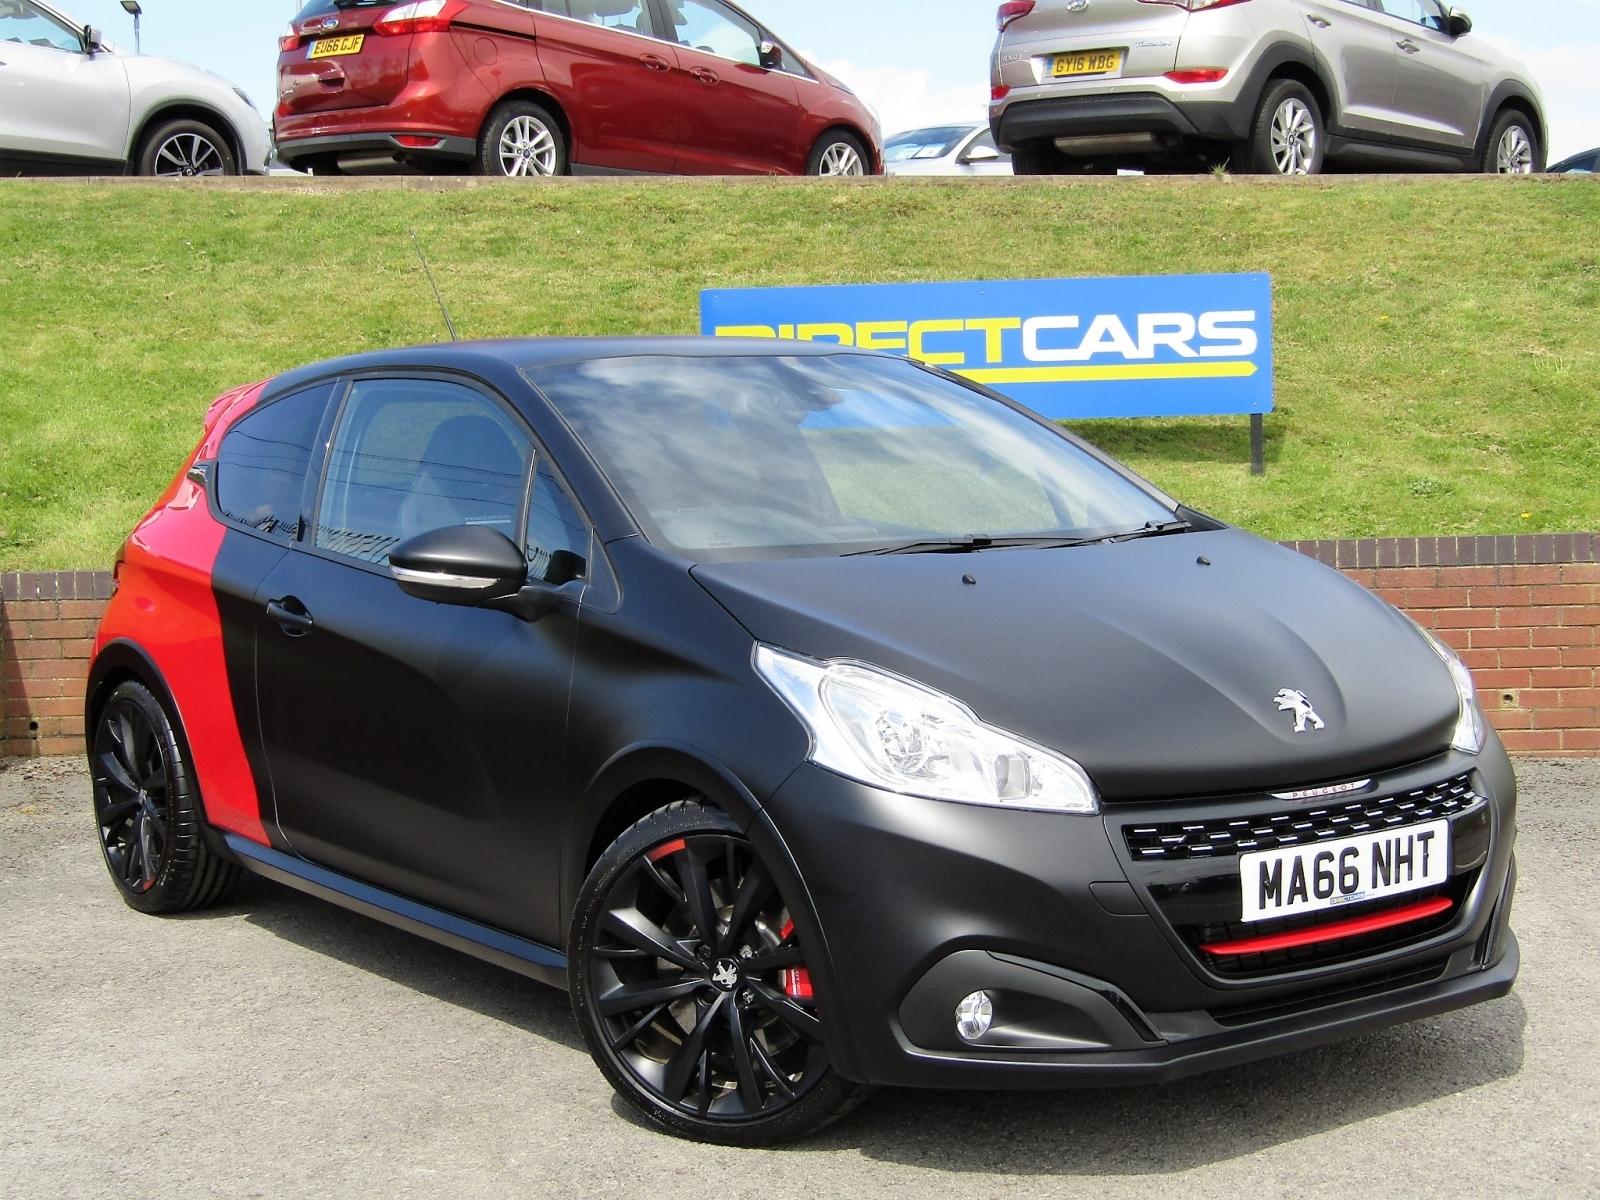 Peugeot 208 1.6 Gti By Peugeot Sport Turbo 205 3 Hatch Petrol Hatch Petrol Coupe Franche Red/black